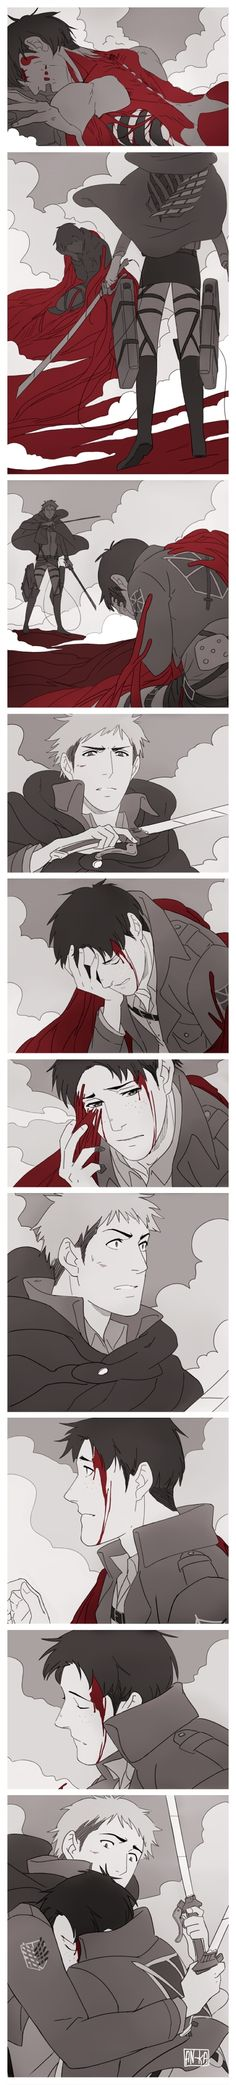 SnK- Marco x Jean- OMFG wat if this actually happened in the show<I would be soooo happy!!